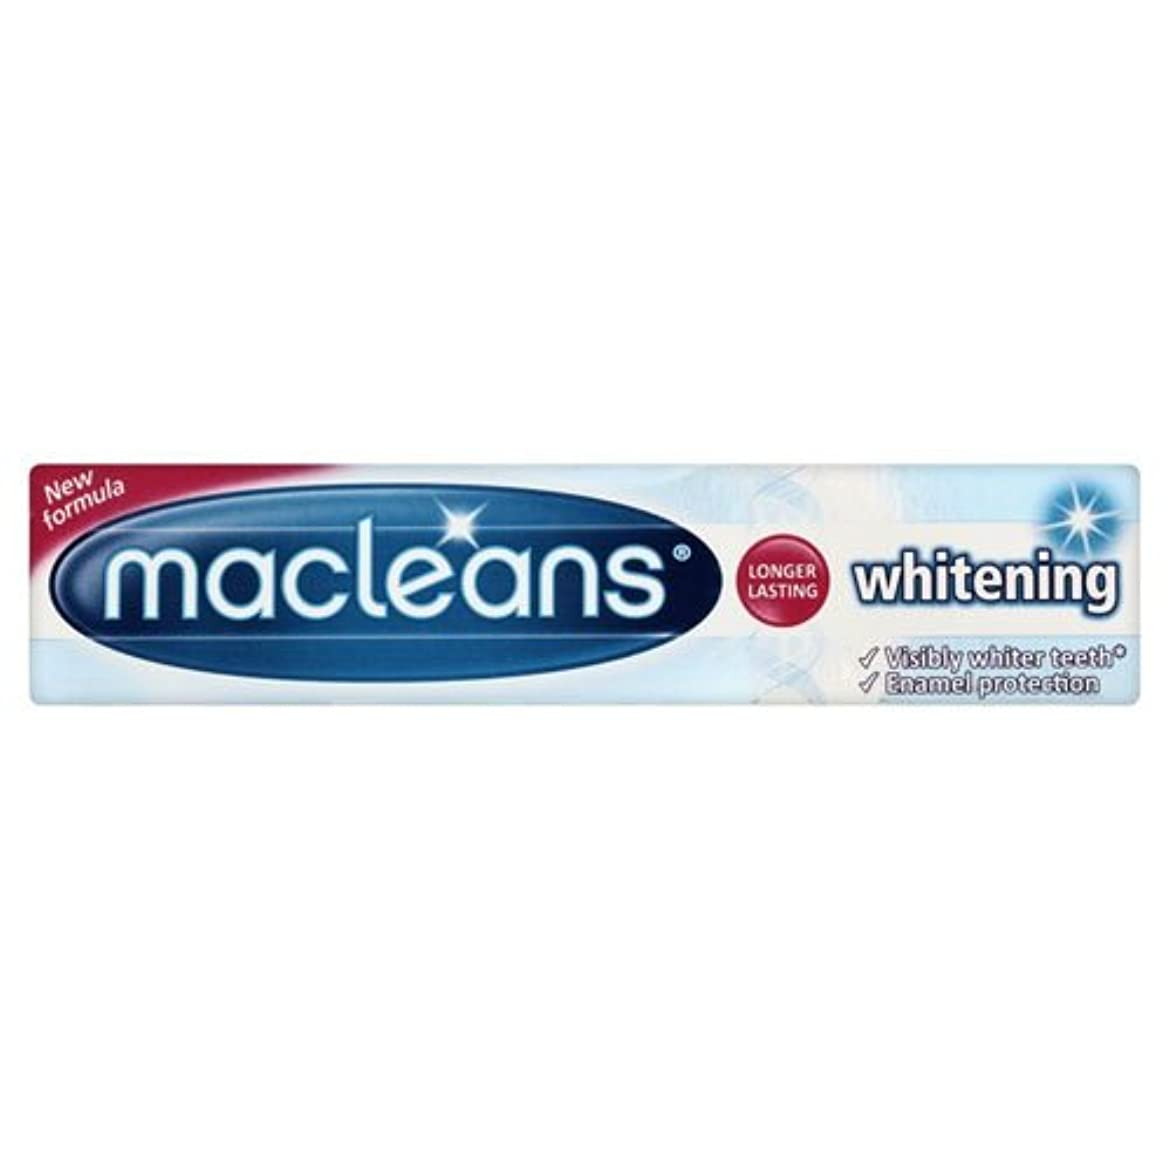 Macleans Whitening Toothpaste Tube 100ml by Macleans